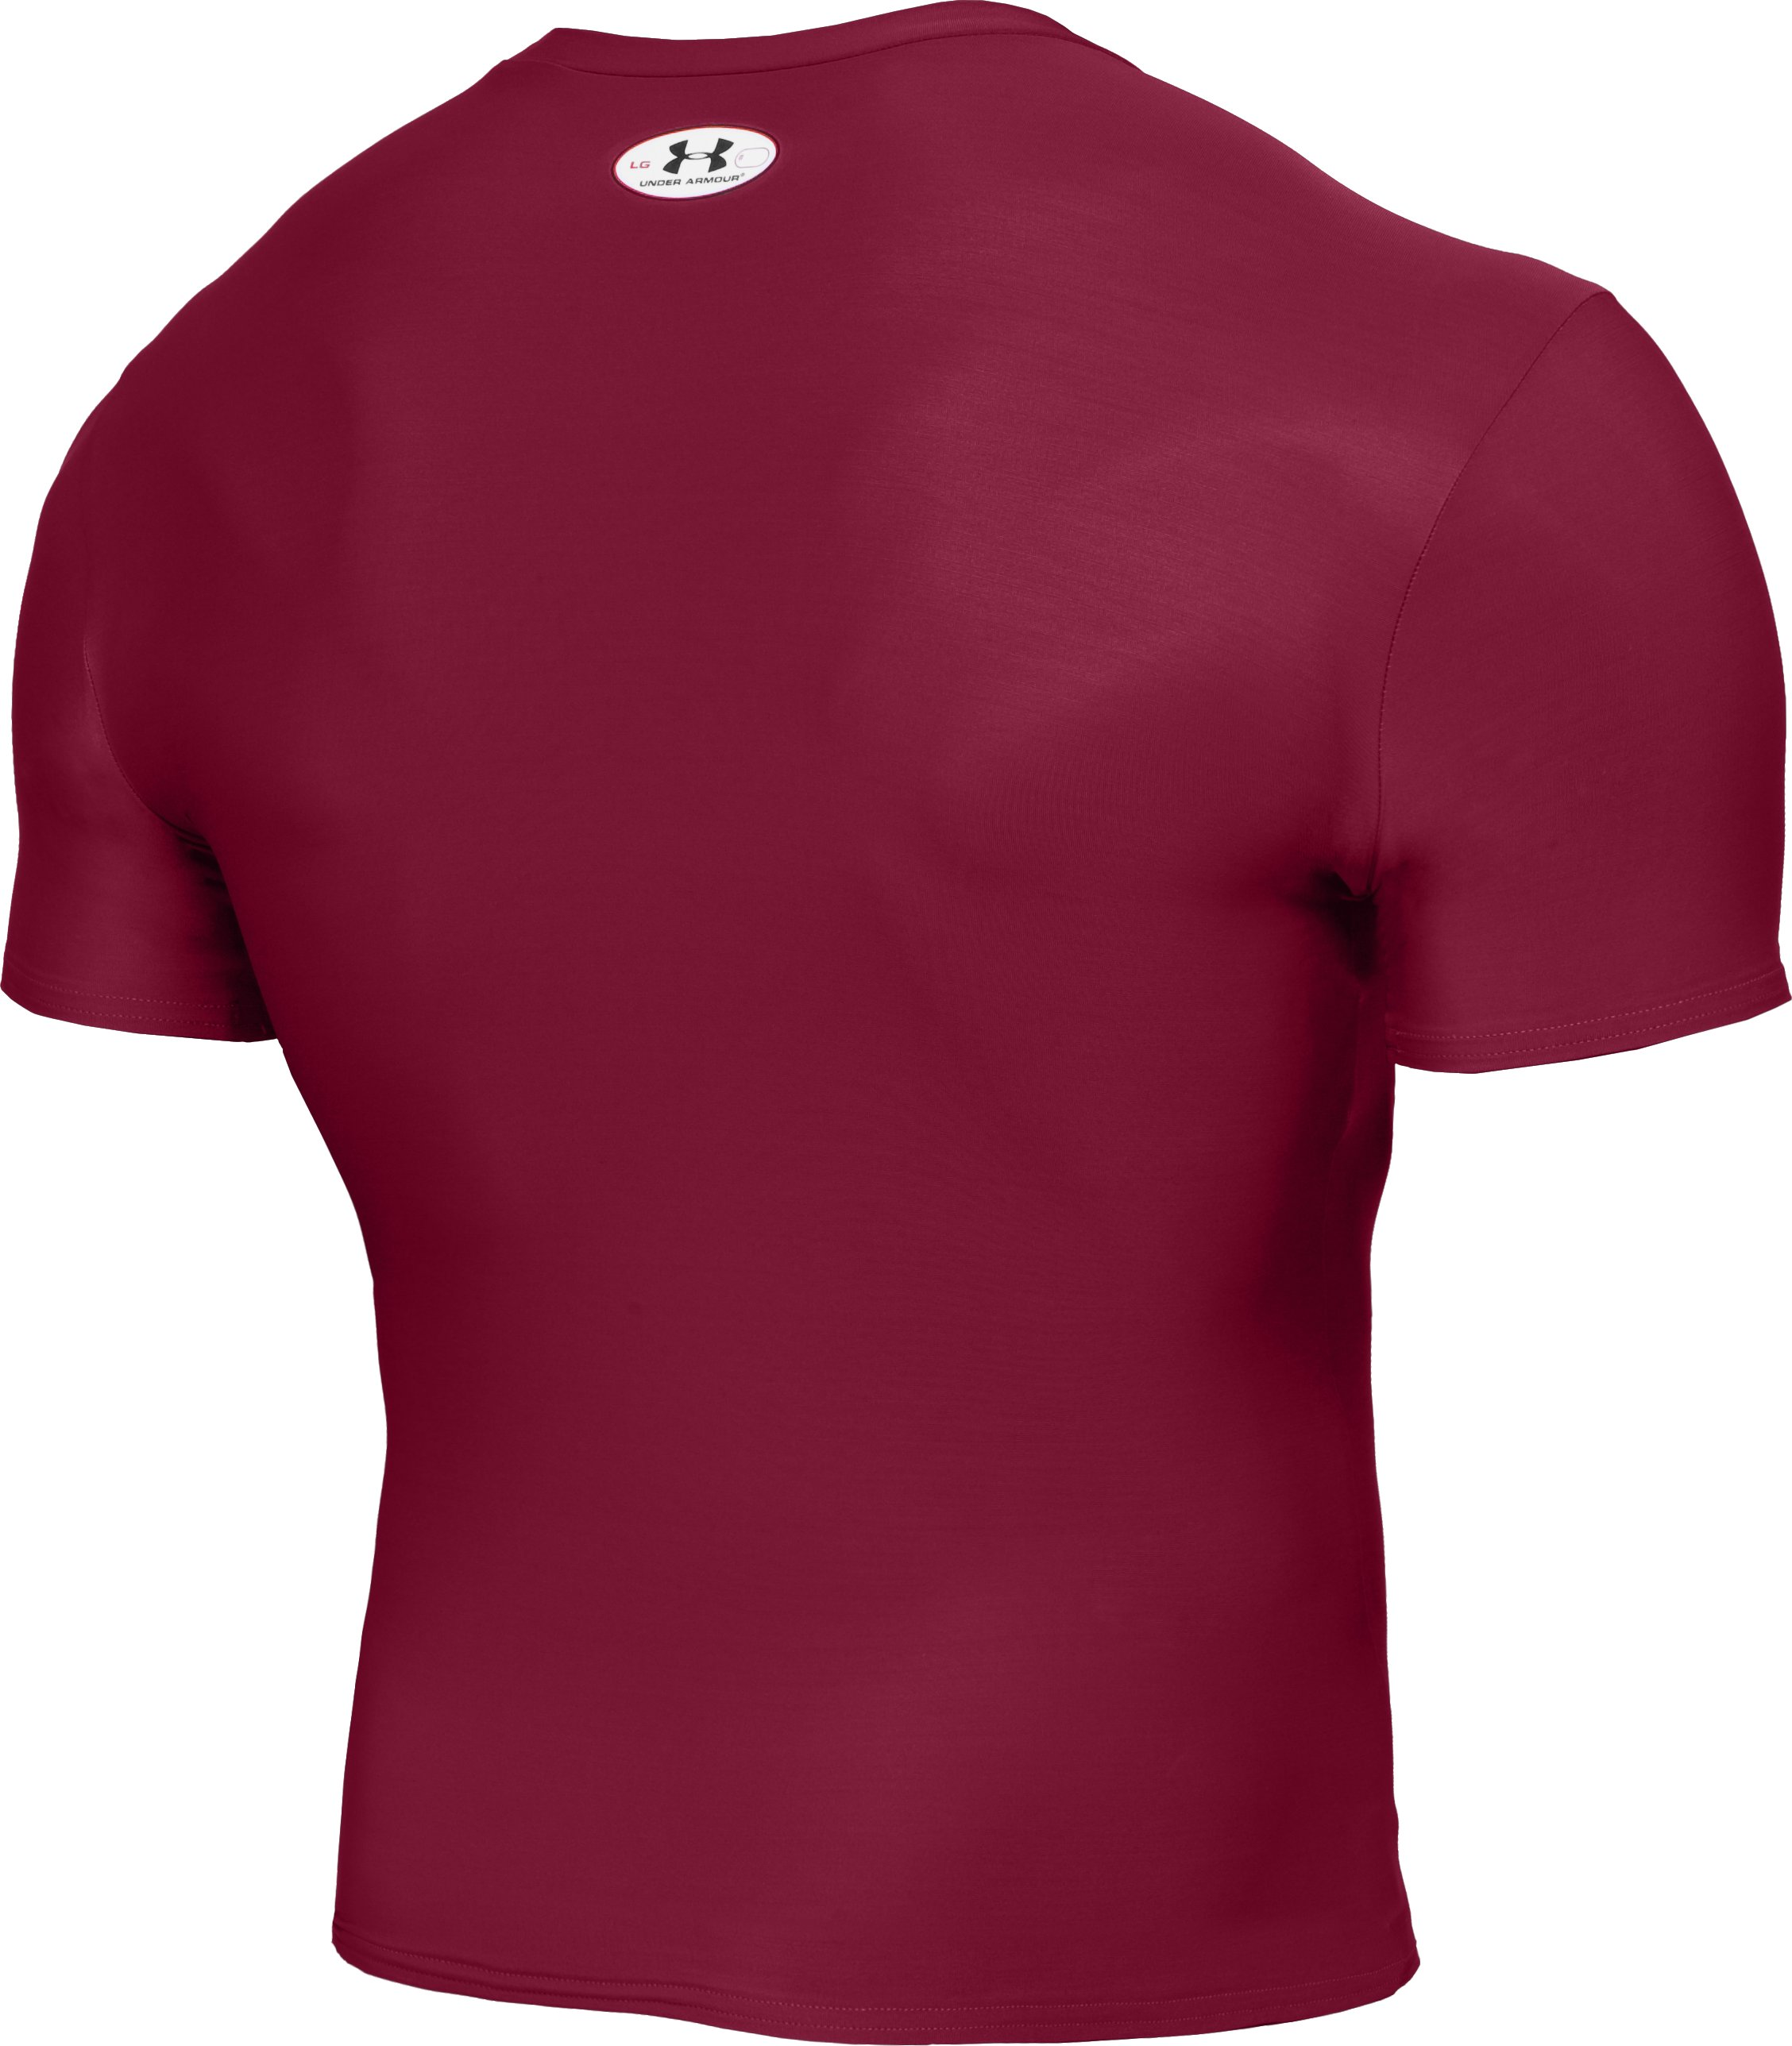 Men's HeatGear® Compression Short Sleeve T-Shirt, Maroon